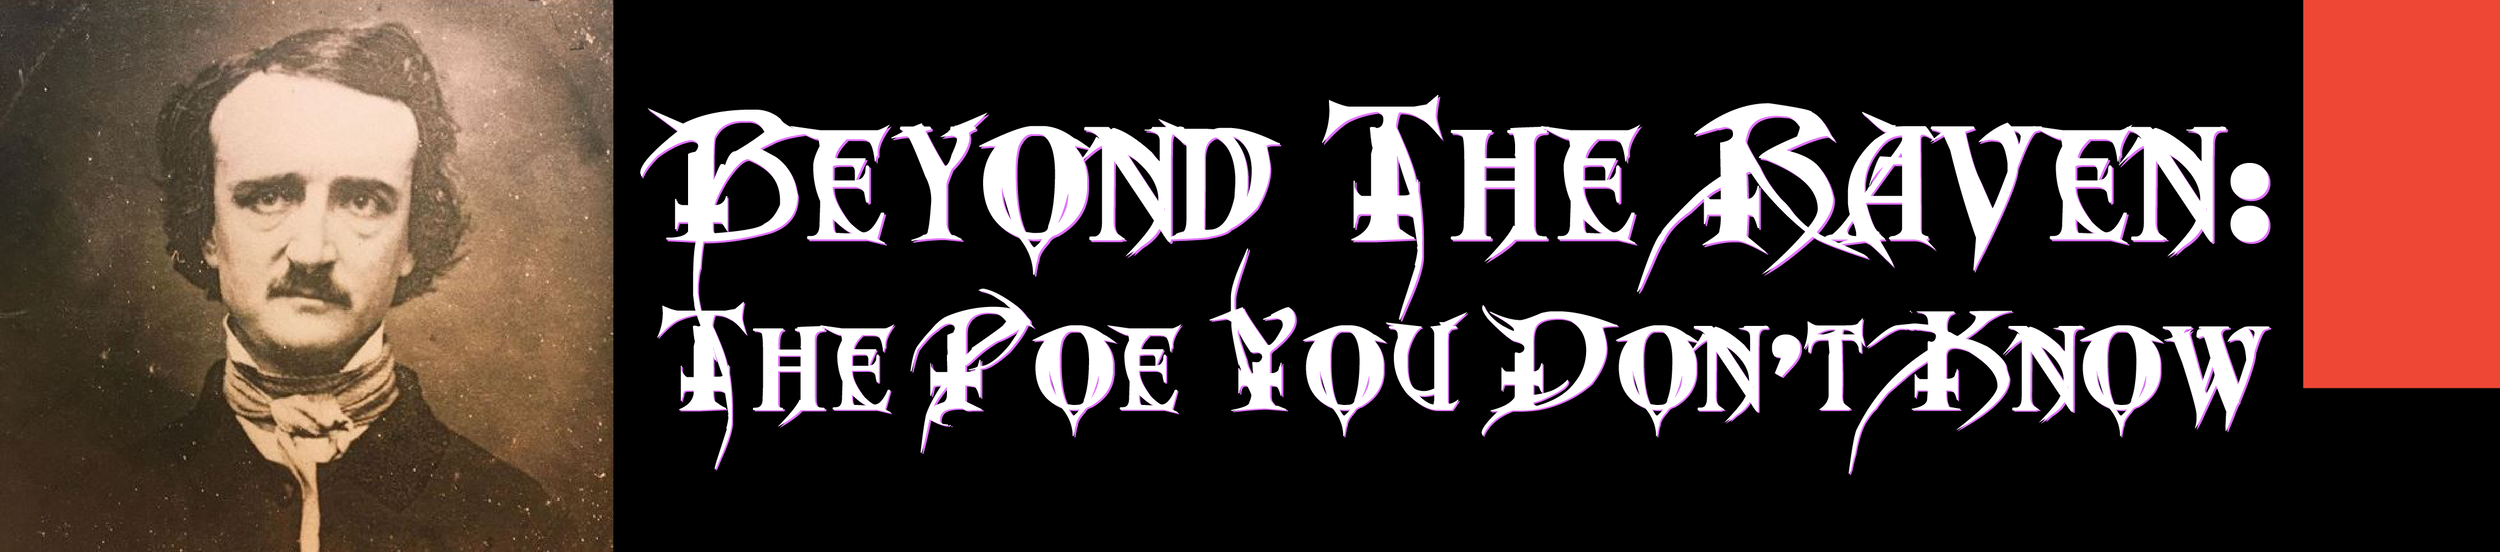 Beyond The Raven The Poe You don't Know Page Header